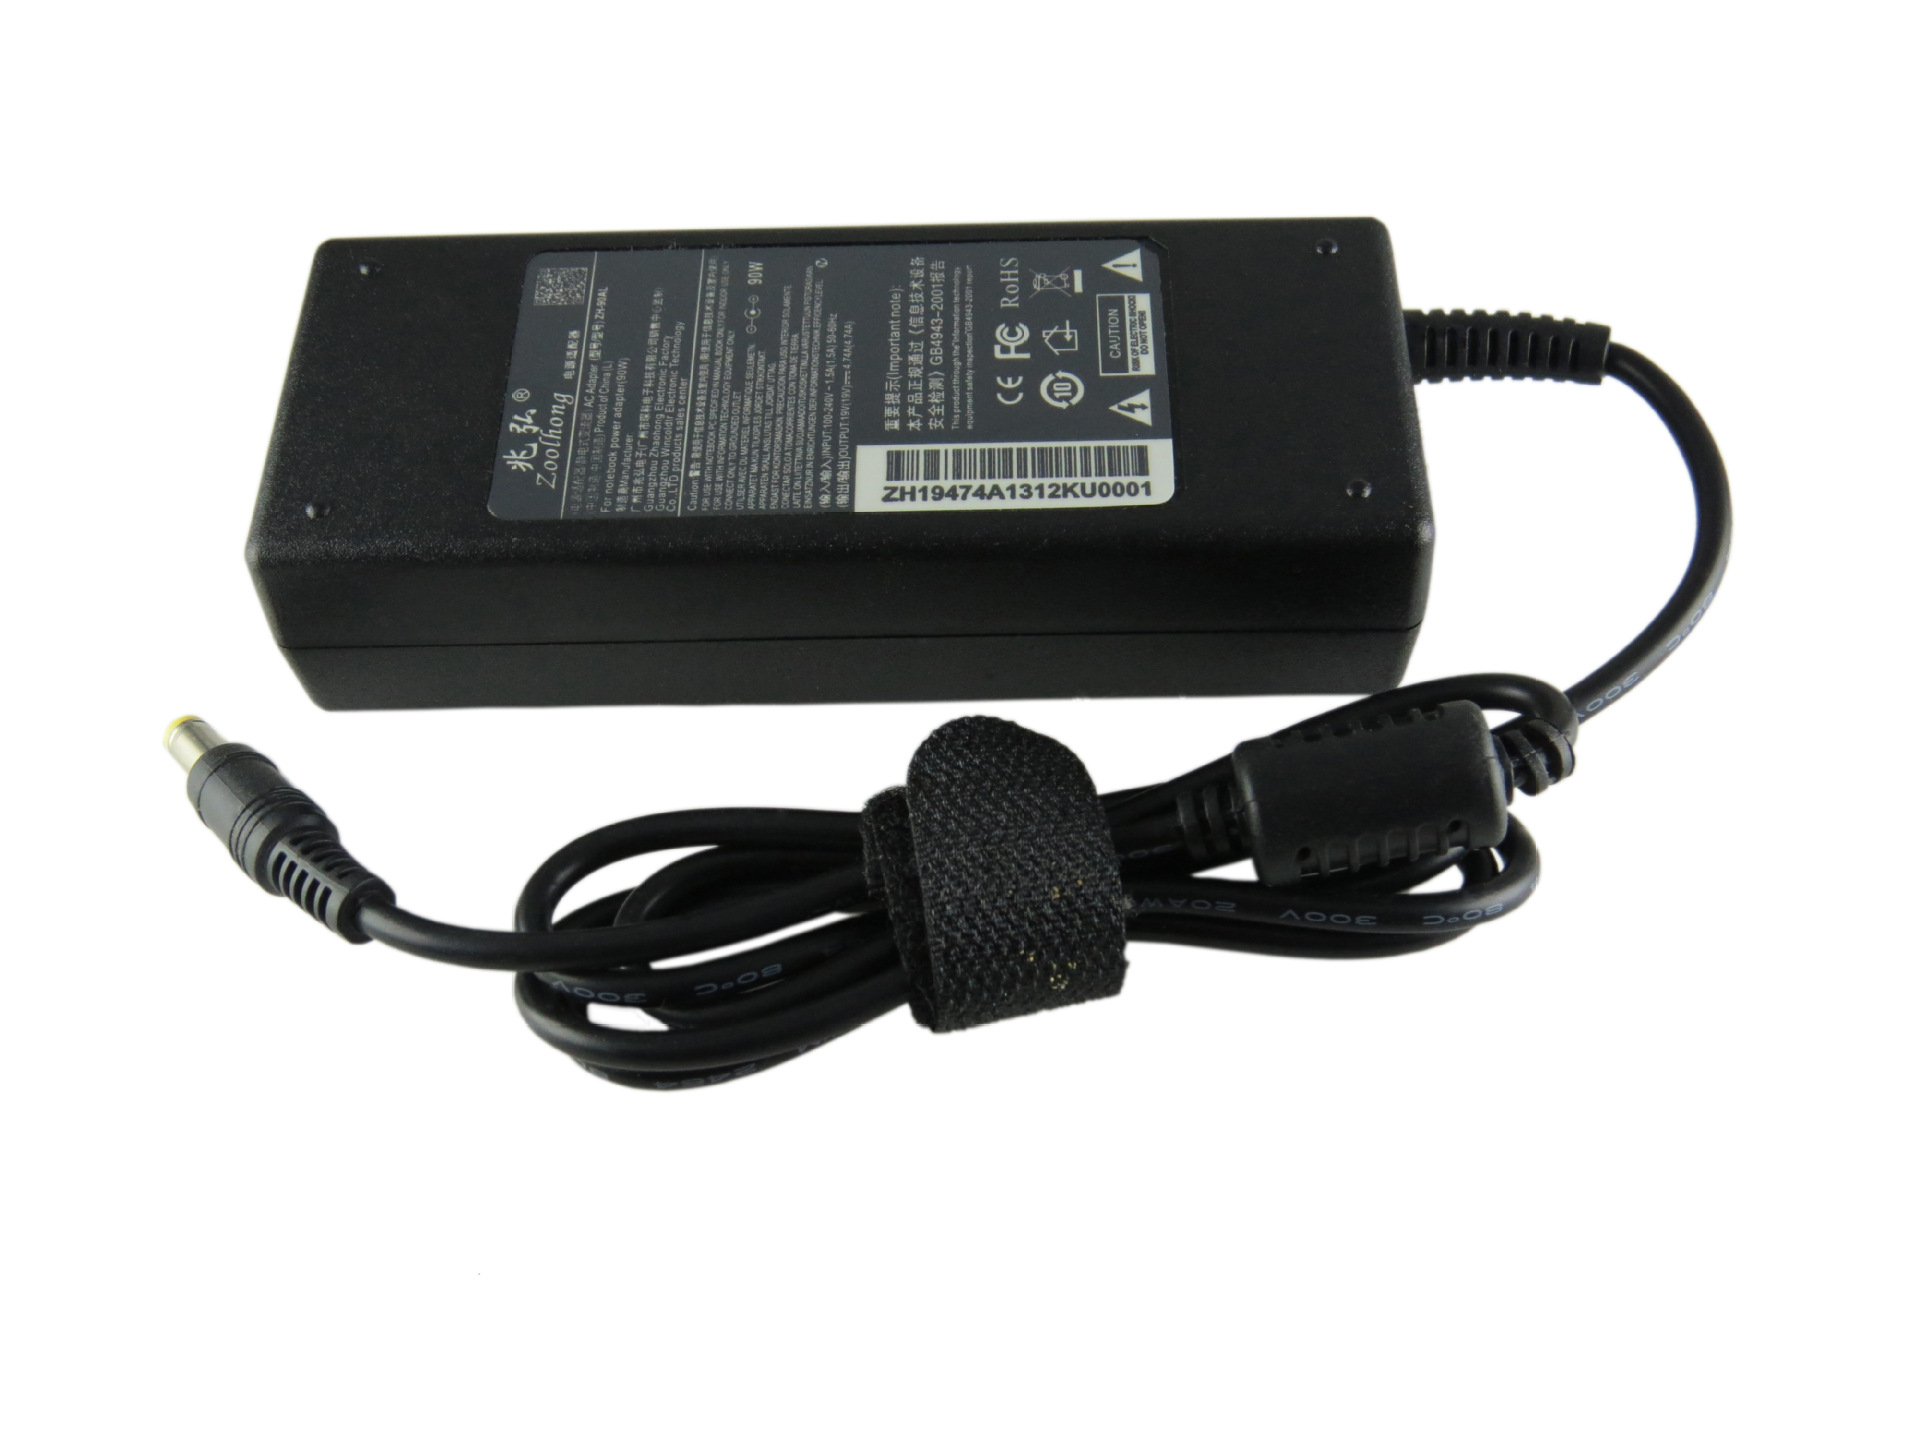 19V 4.74A 90W cargador de adaptador de corriente alterna para laptop Aspire 4710G 4720G 4730 492Ac 3020 5020 8200 4910 5551 5552 5.5Mm * 1.7Mm